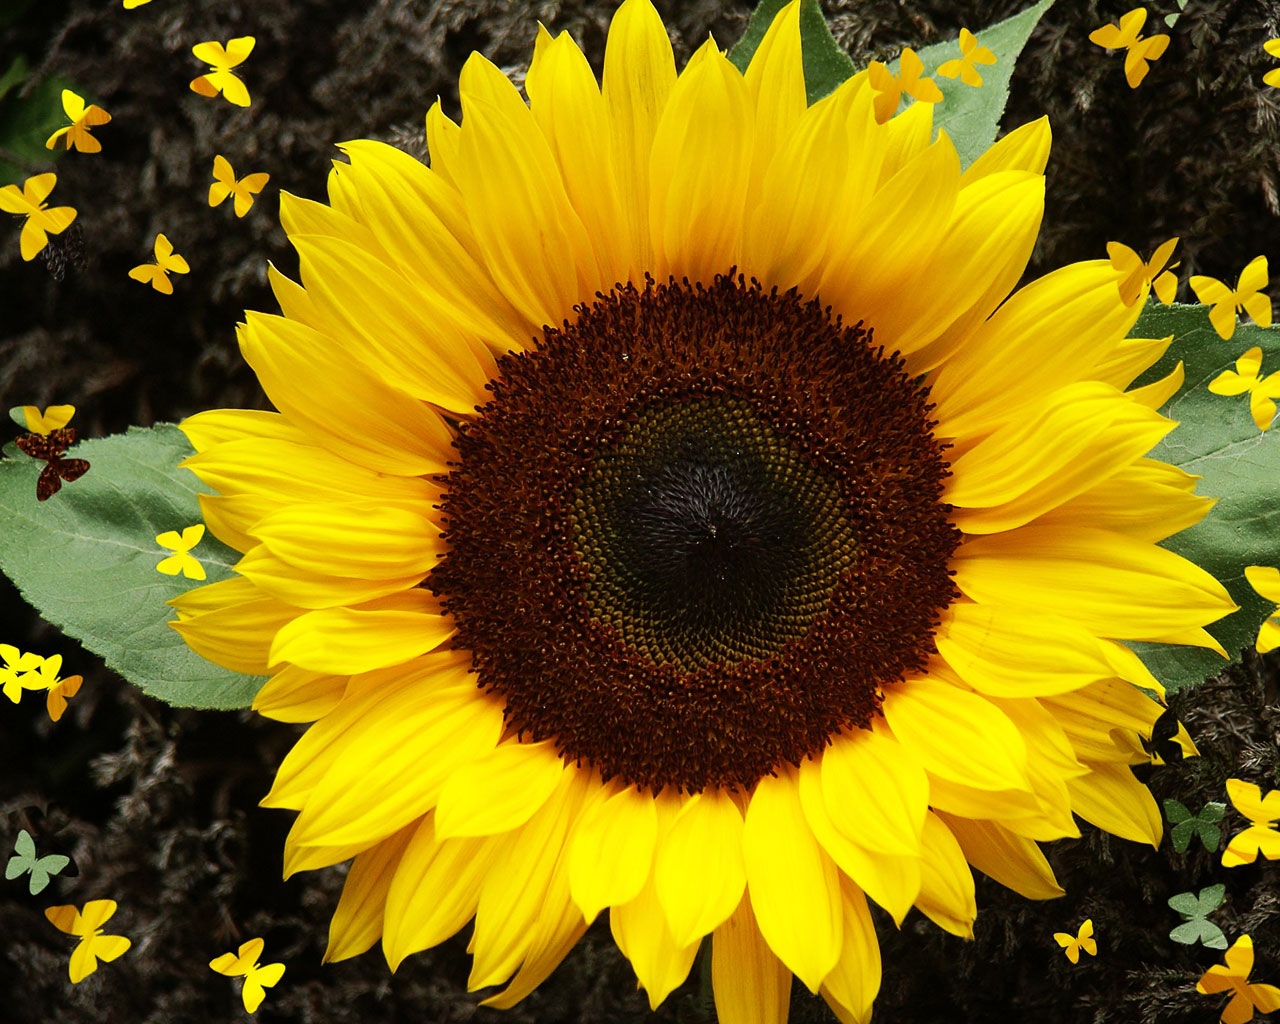 sunflower-wallpaper.jpg